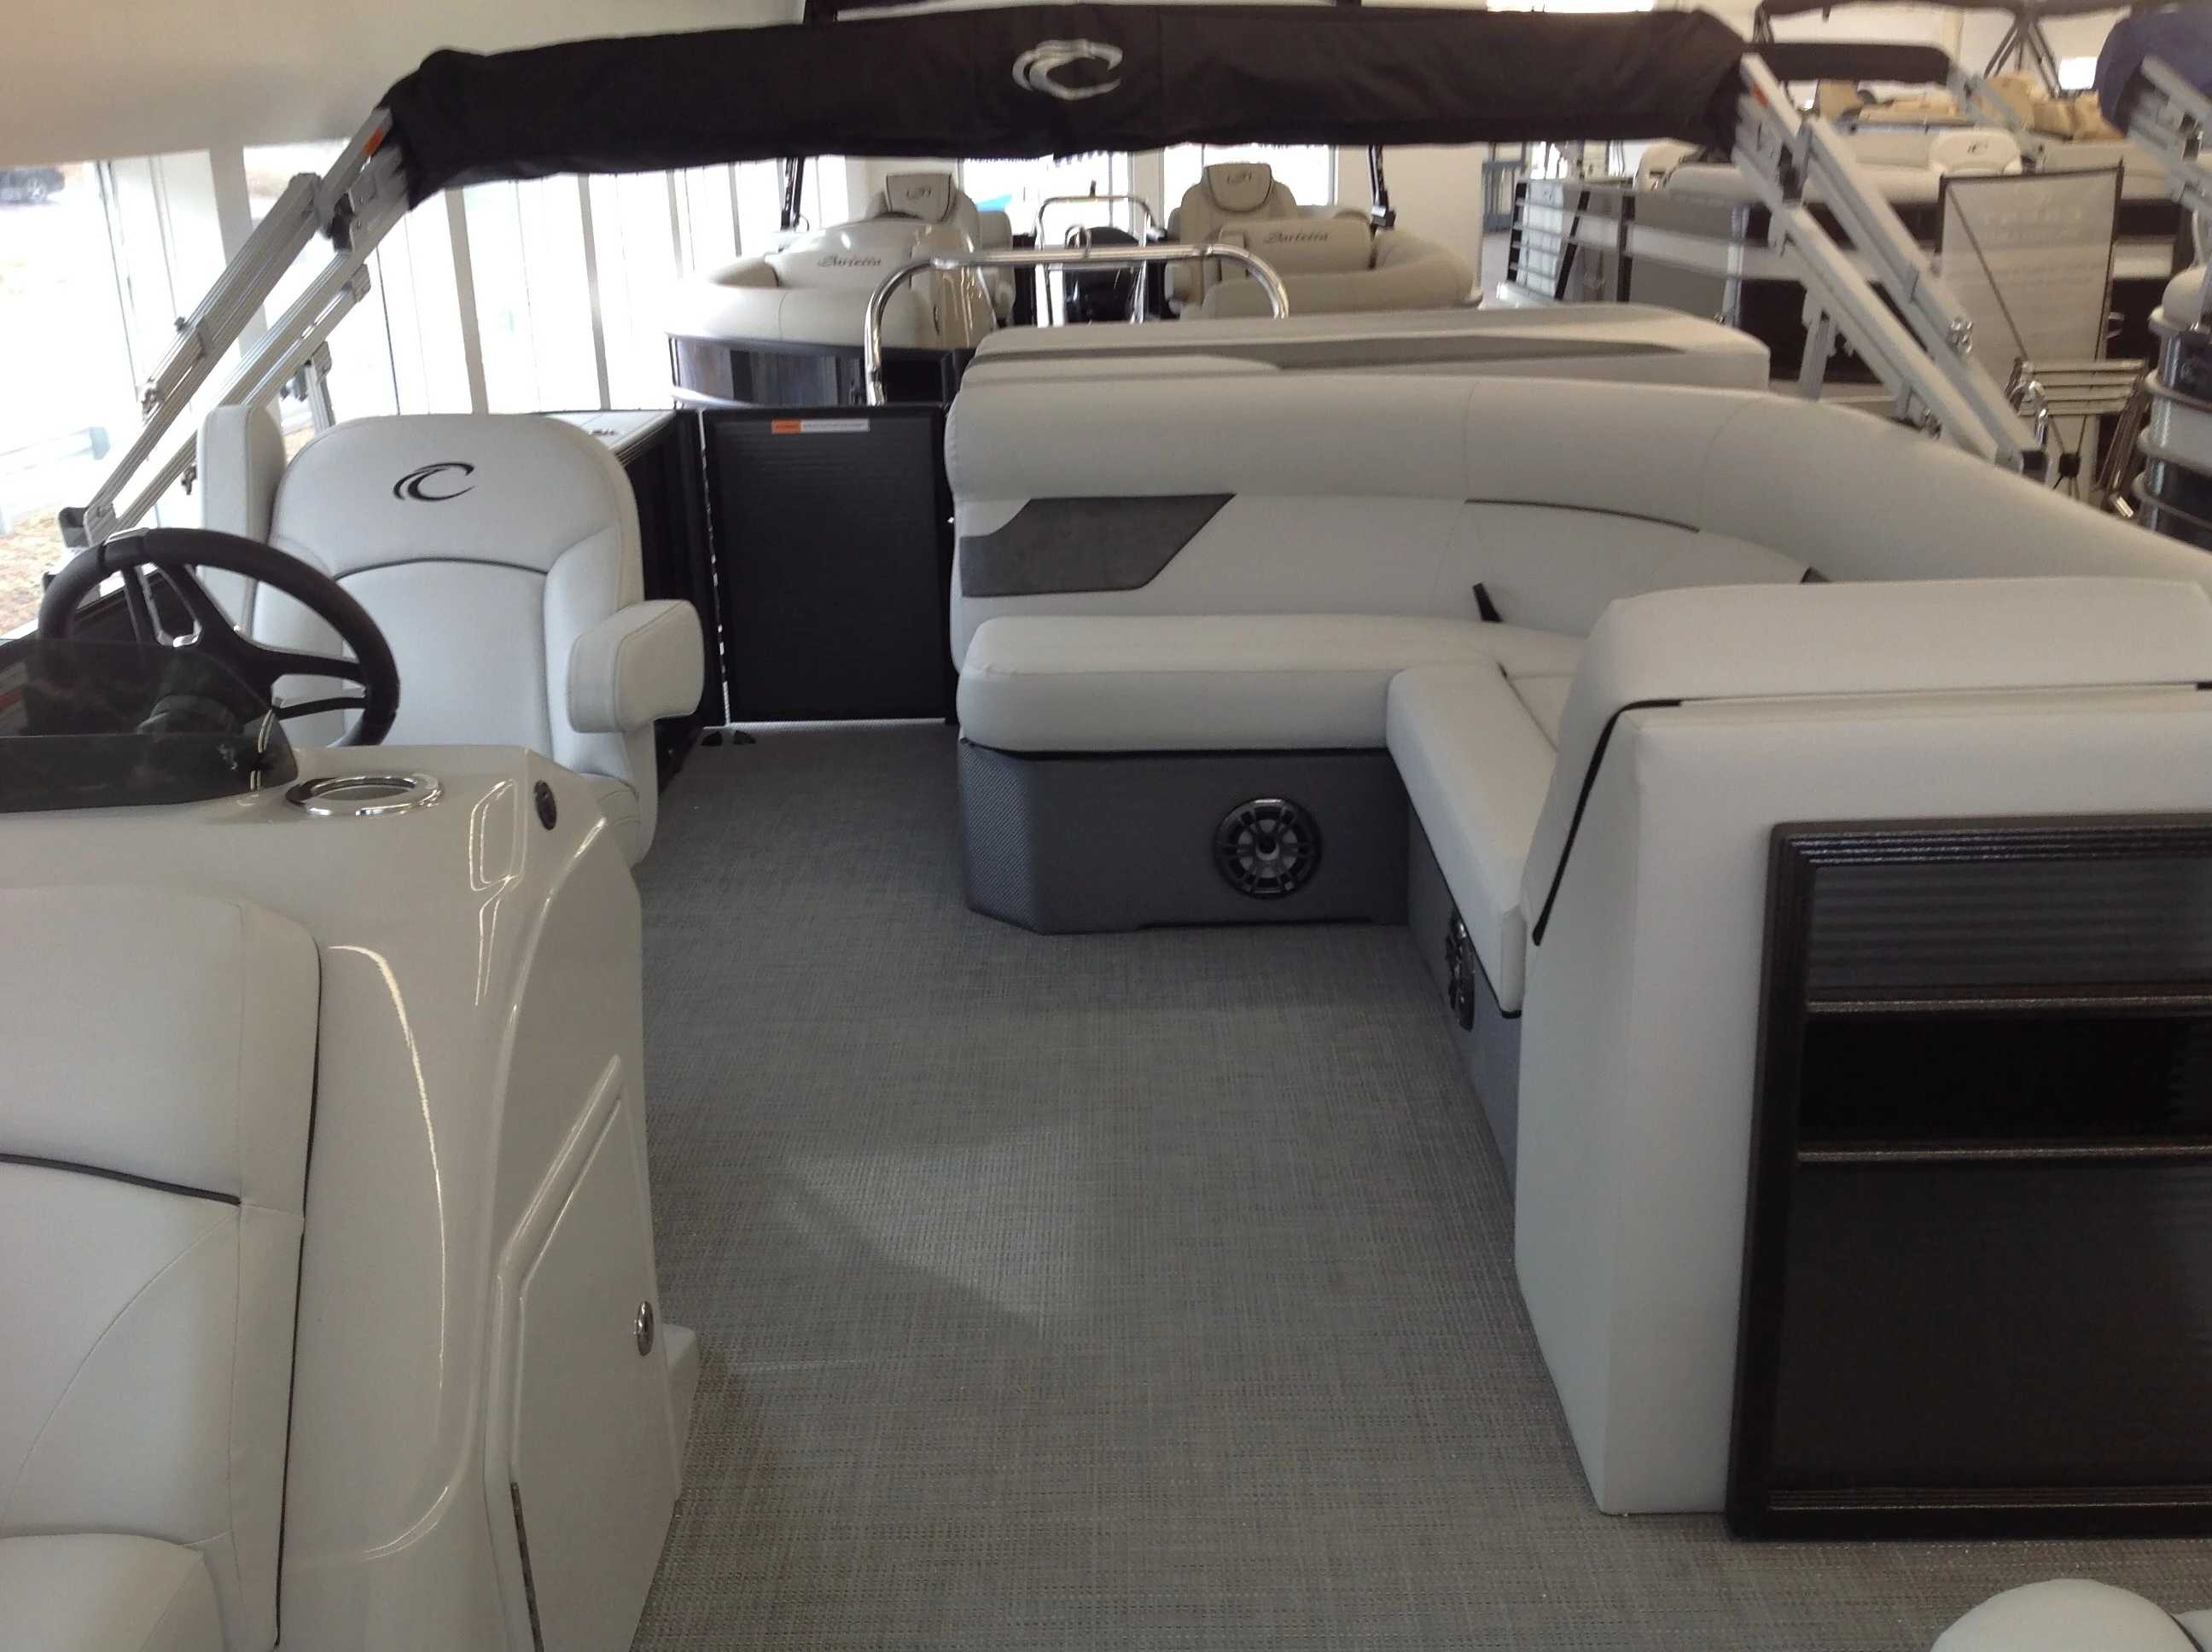 2021 Crest boat for sale, model of the boat is Cl Lx 200l & Image # 3 of 9